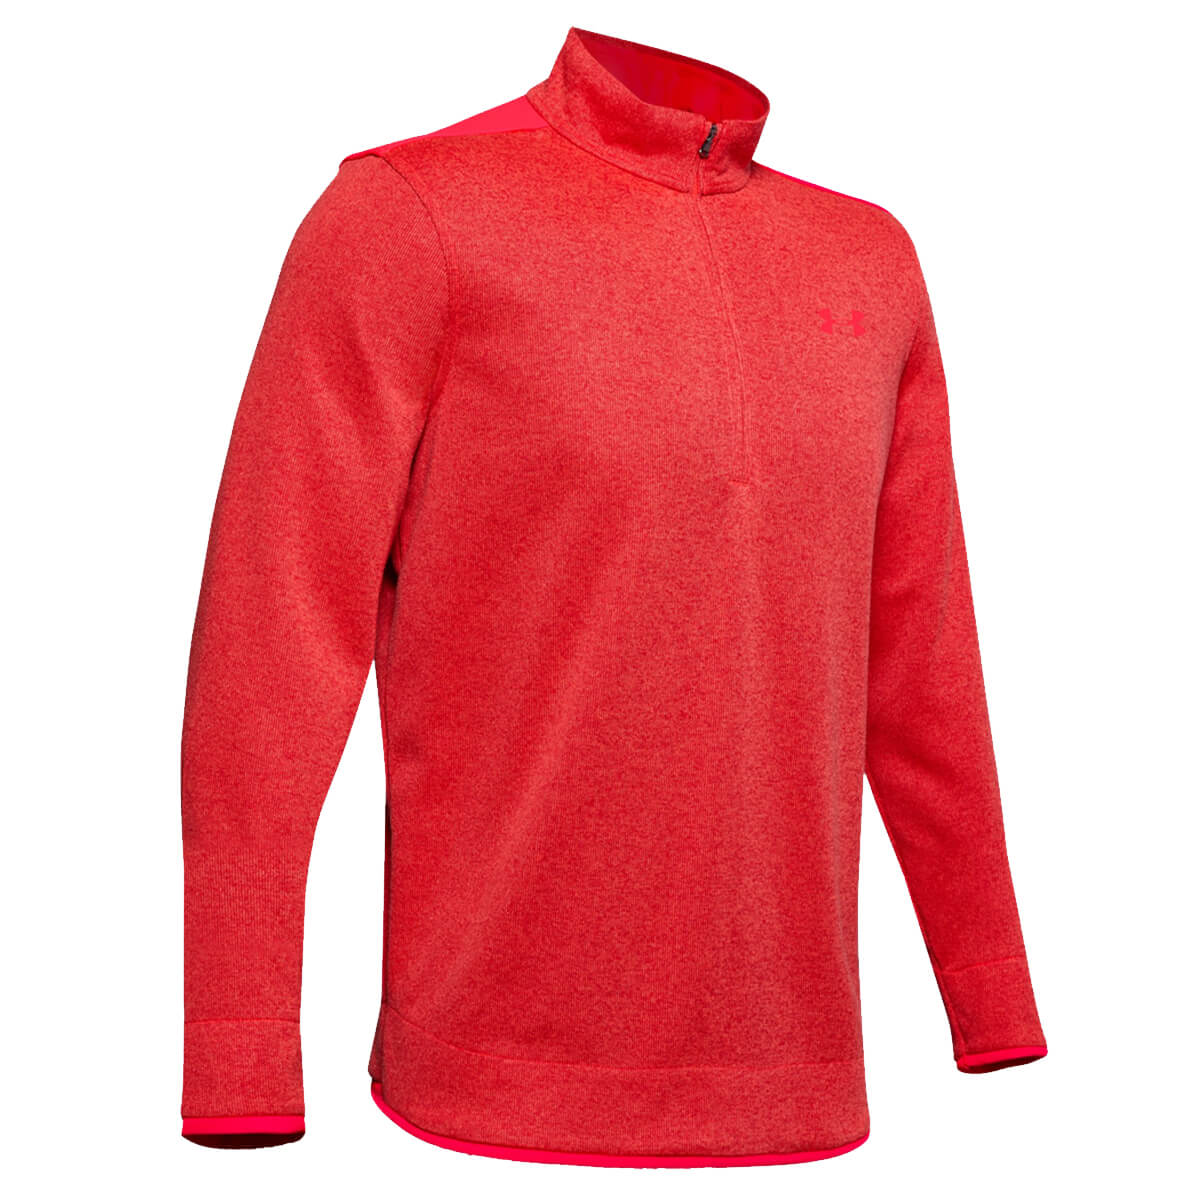 Under-Armour-Homme-UA-sweaterfleece-1-2-zip-resistant-a-l-039-eau-Pullover-40-OFF-RRP miniature 11